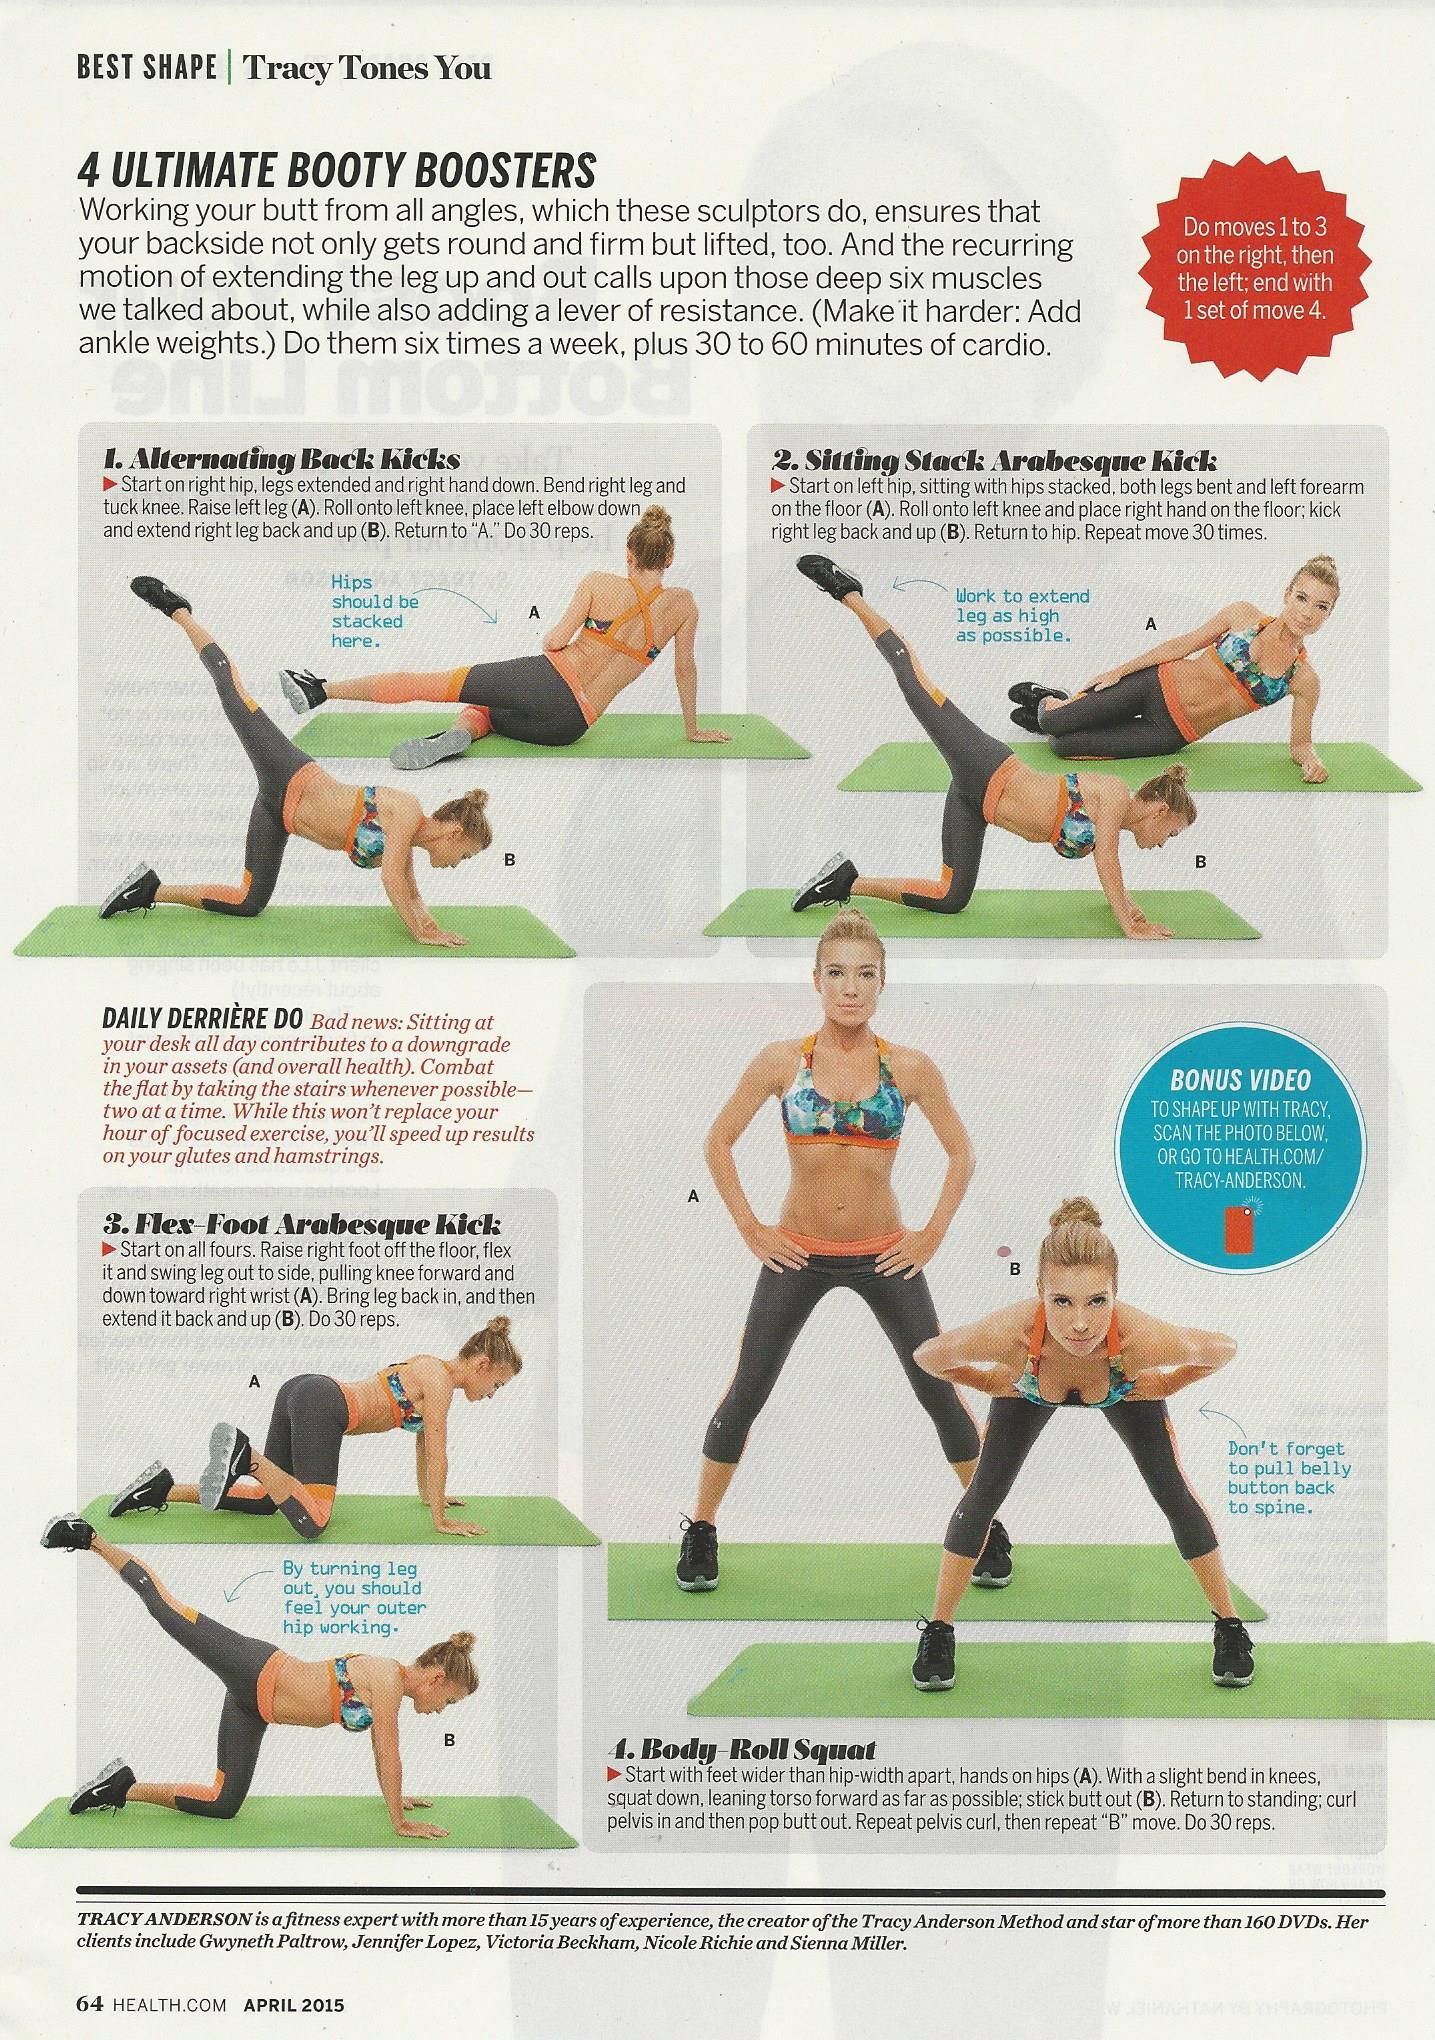 Tracey Anderson In Health Magazine 001 Jpg Jpeg Image 1435 2040 Pixels Scaled 37 Tracy Anderson Workout Lower Body Workout Tracey Anderson Workouts